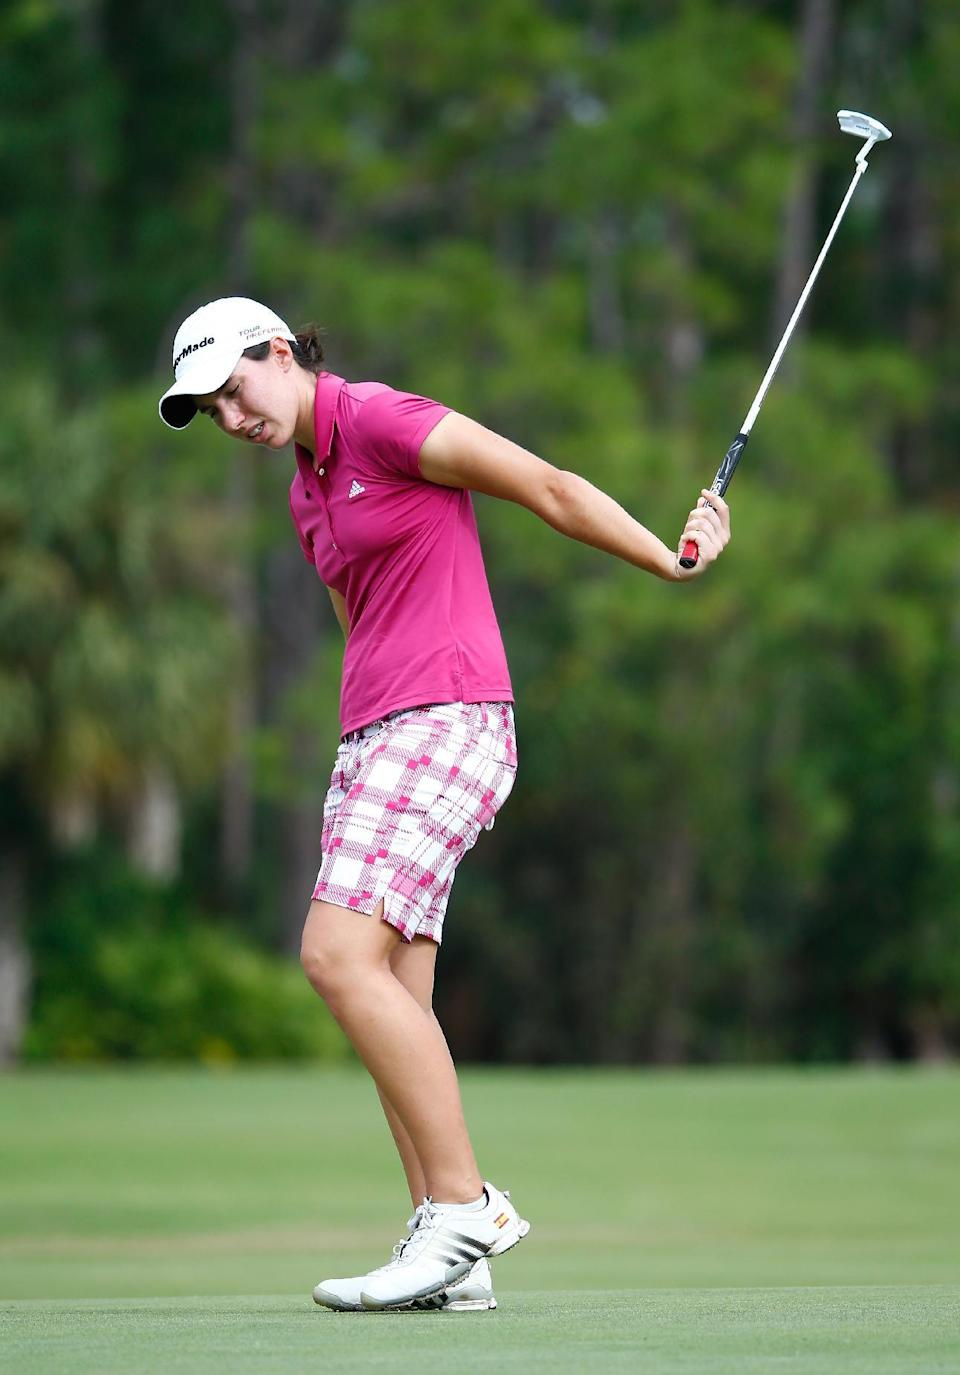 Carlota Ciganda of Spain reacts to a birdie attempt on the seventh hole during the third round of the CME Group Tour Championship at Tiburon Golf Club on November 22, 2014, in Naples, Florida (AFP Photo/Sam Greenwood)